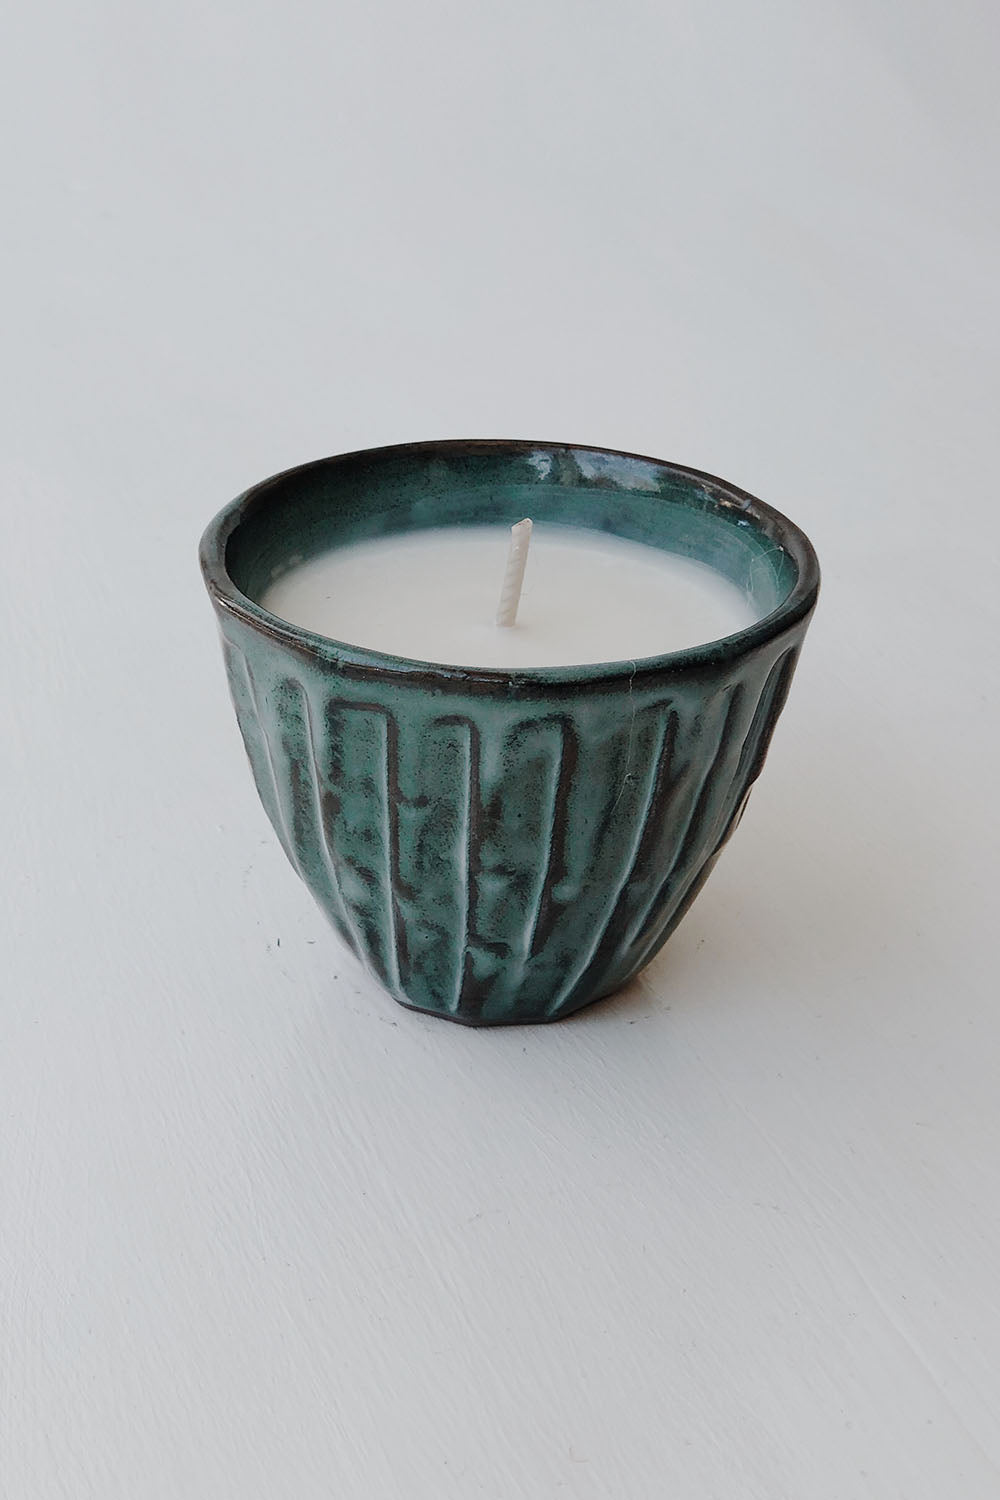 Japanese Kesha Candle - Charcoal